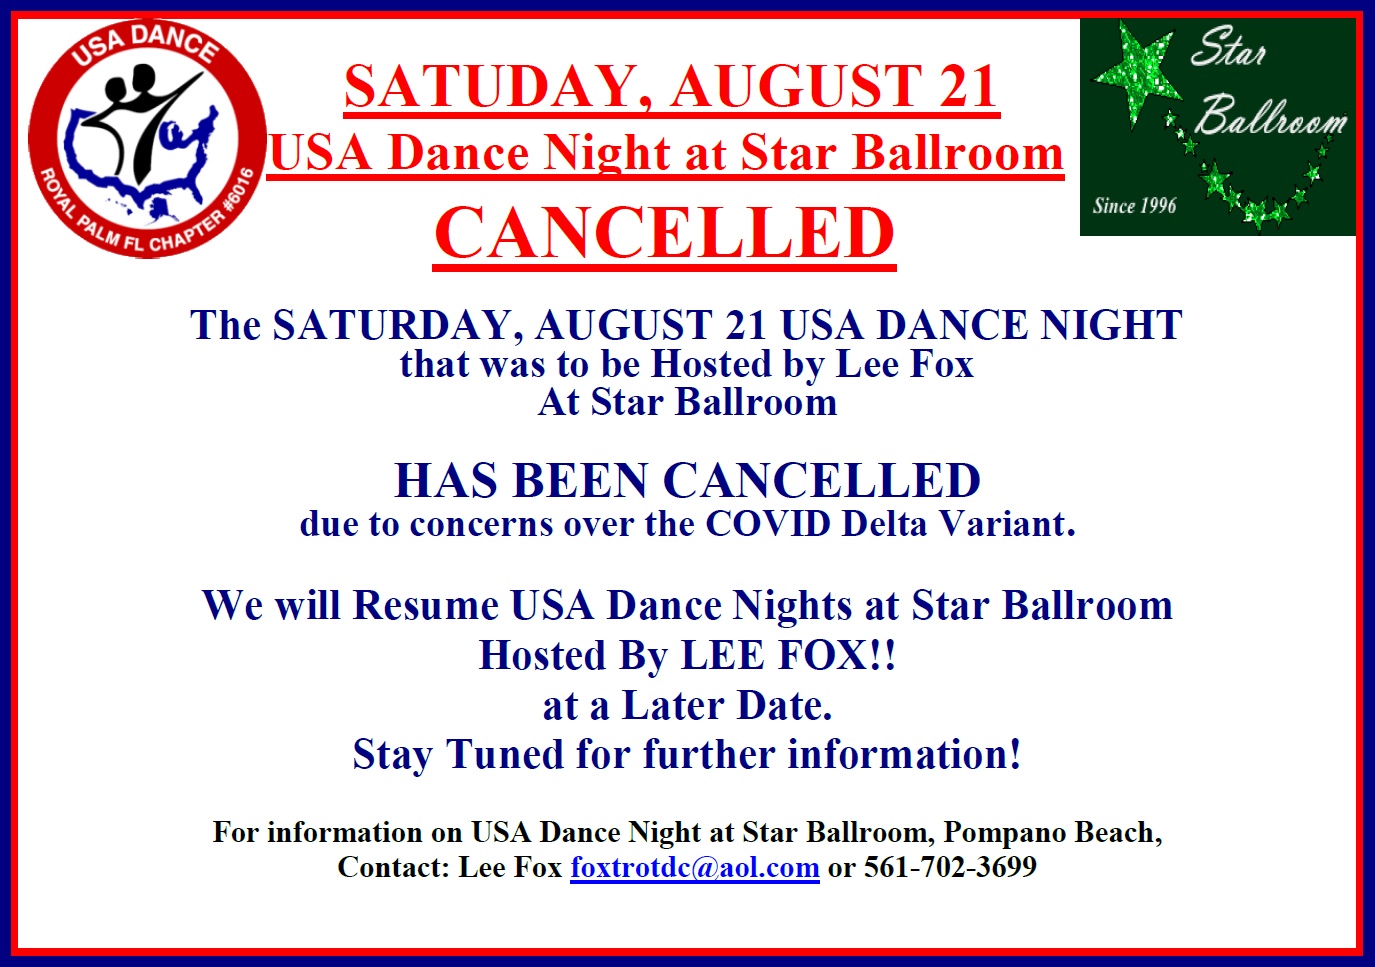 August 21 Royal Palm Chapter Dance CANCELLED - due to concerns over COVID-Delta Variant